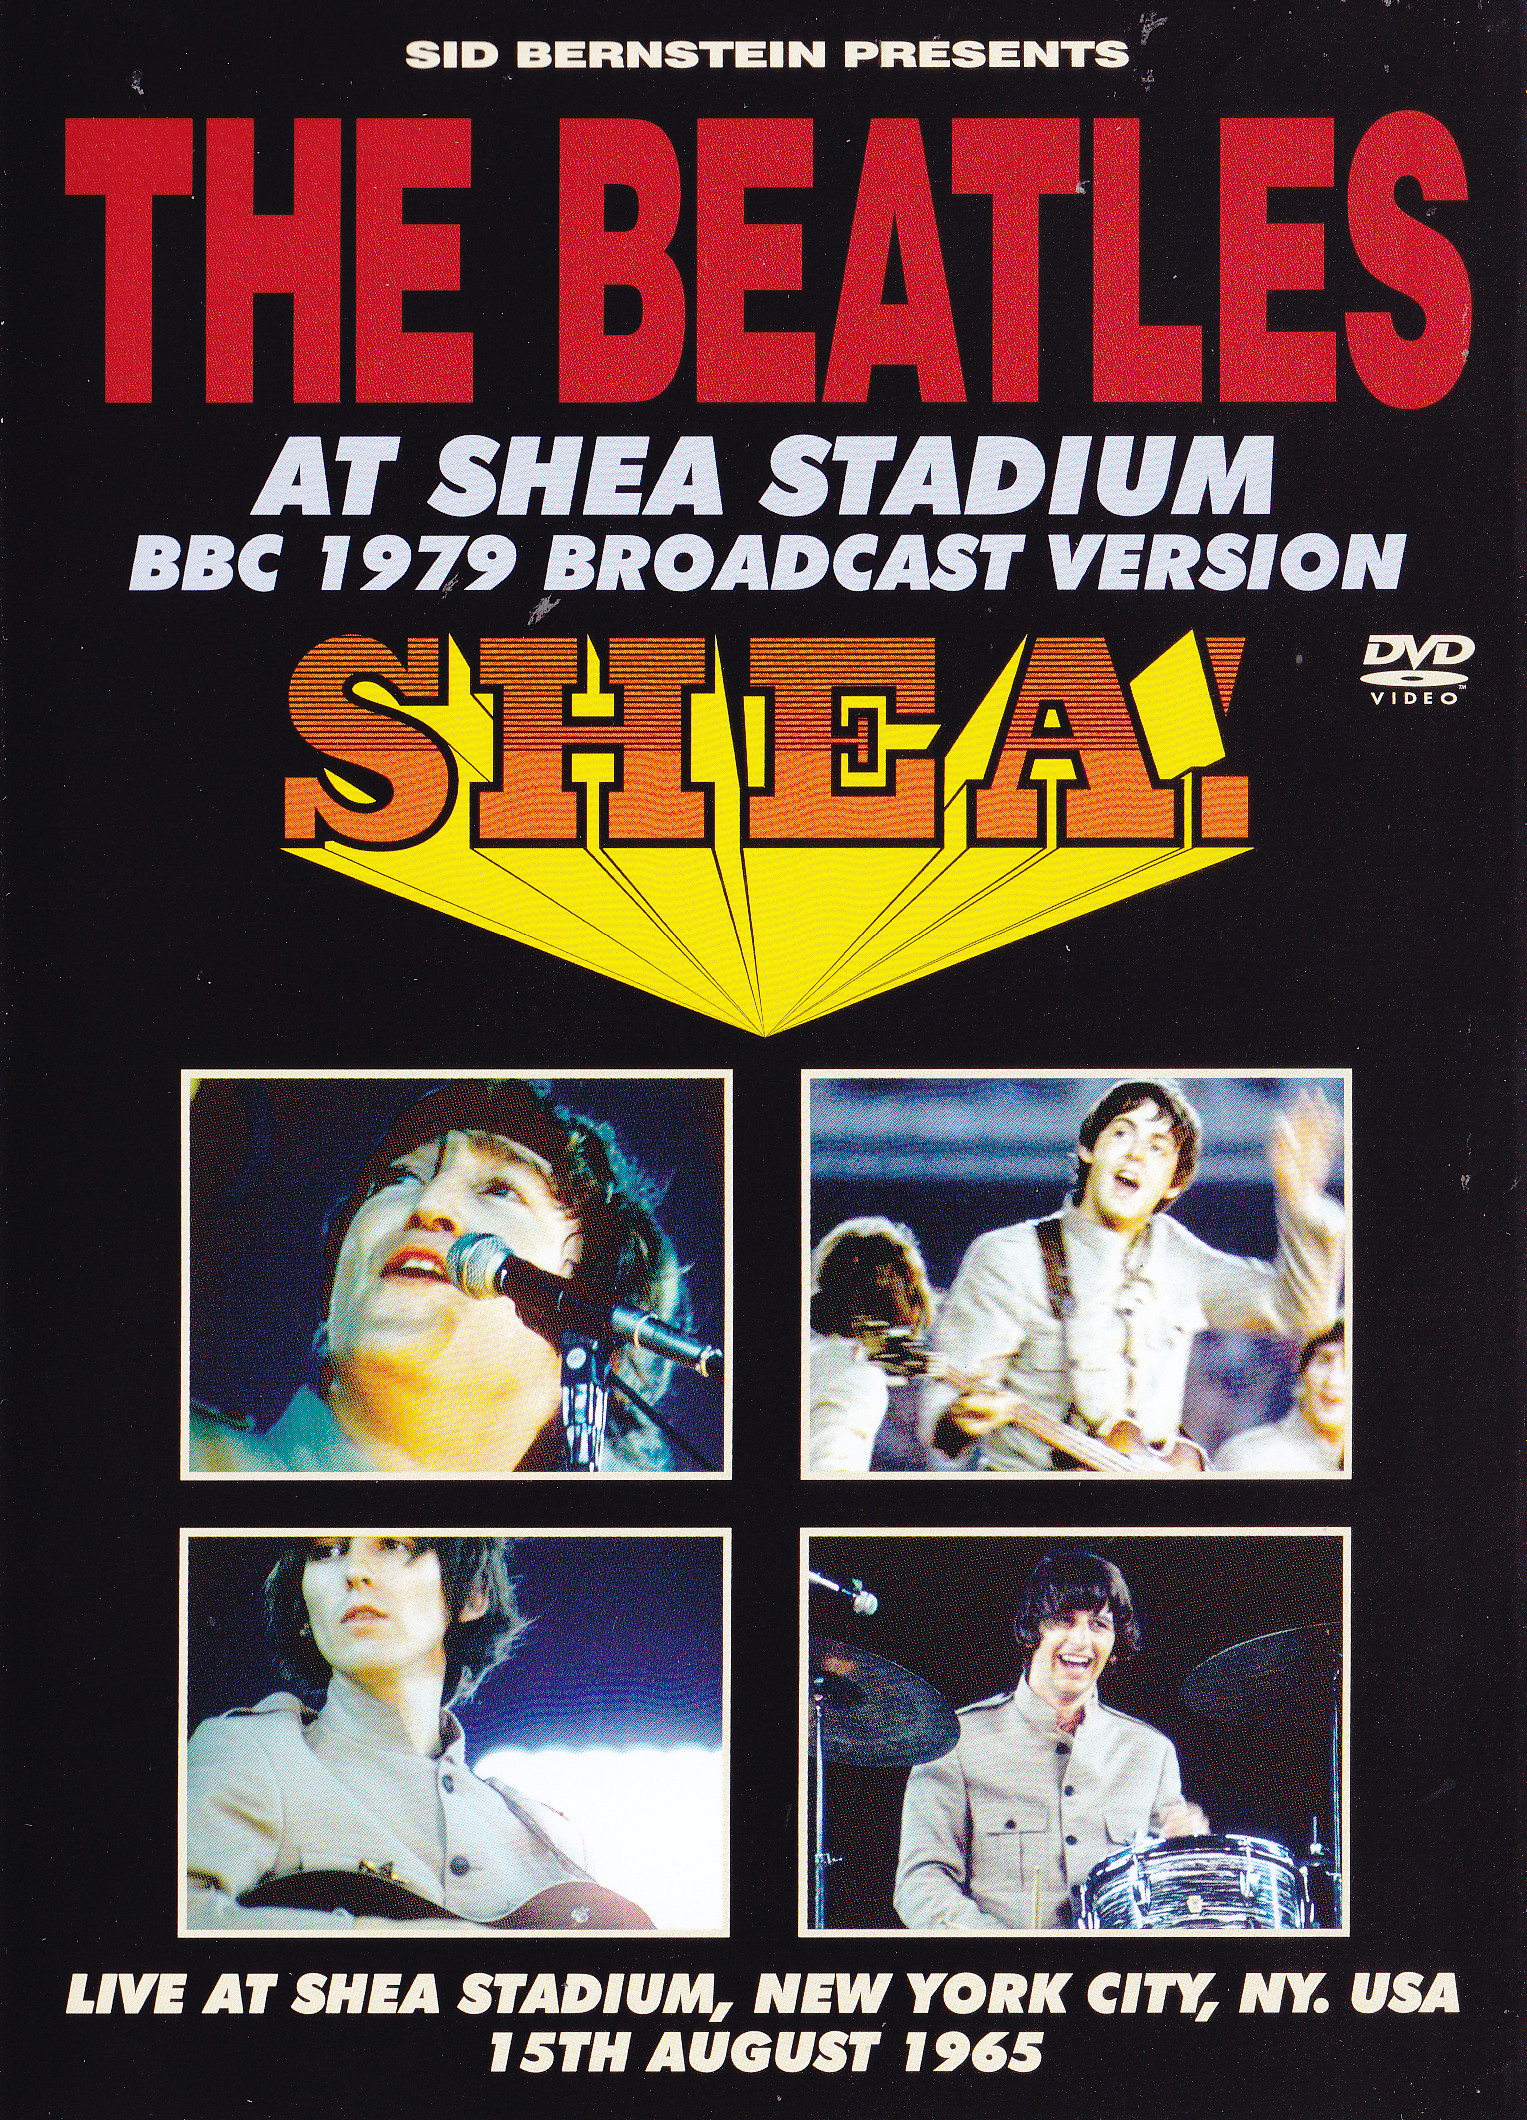 Beatles, The - At Shea Stadium 1979 BBC Broadcast Version (1DVD)    FAB4-81565